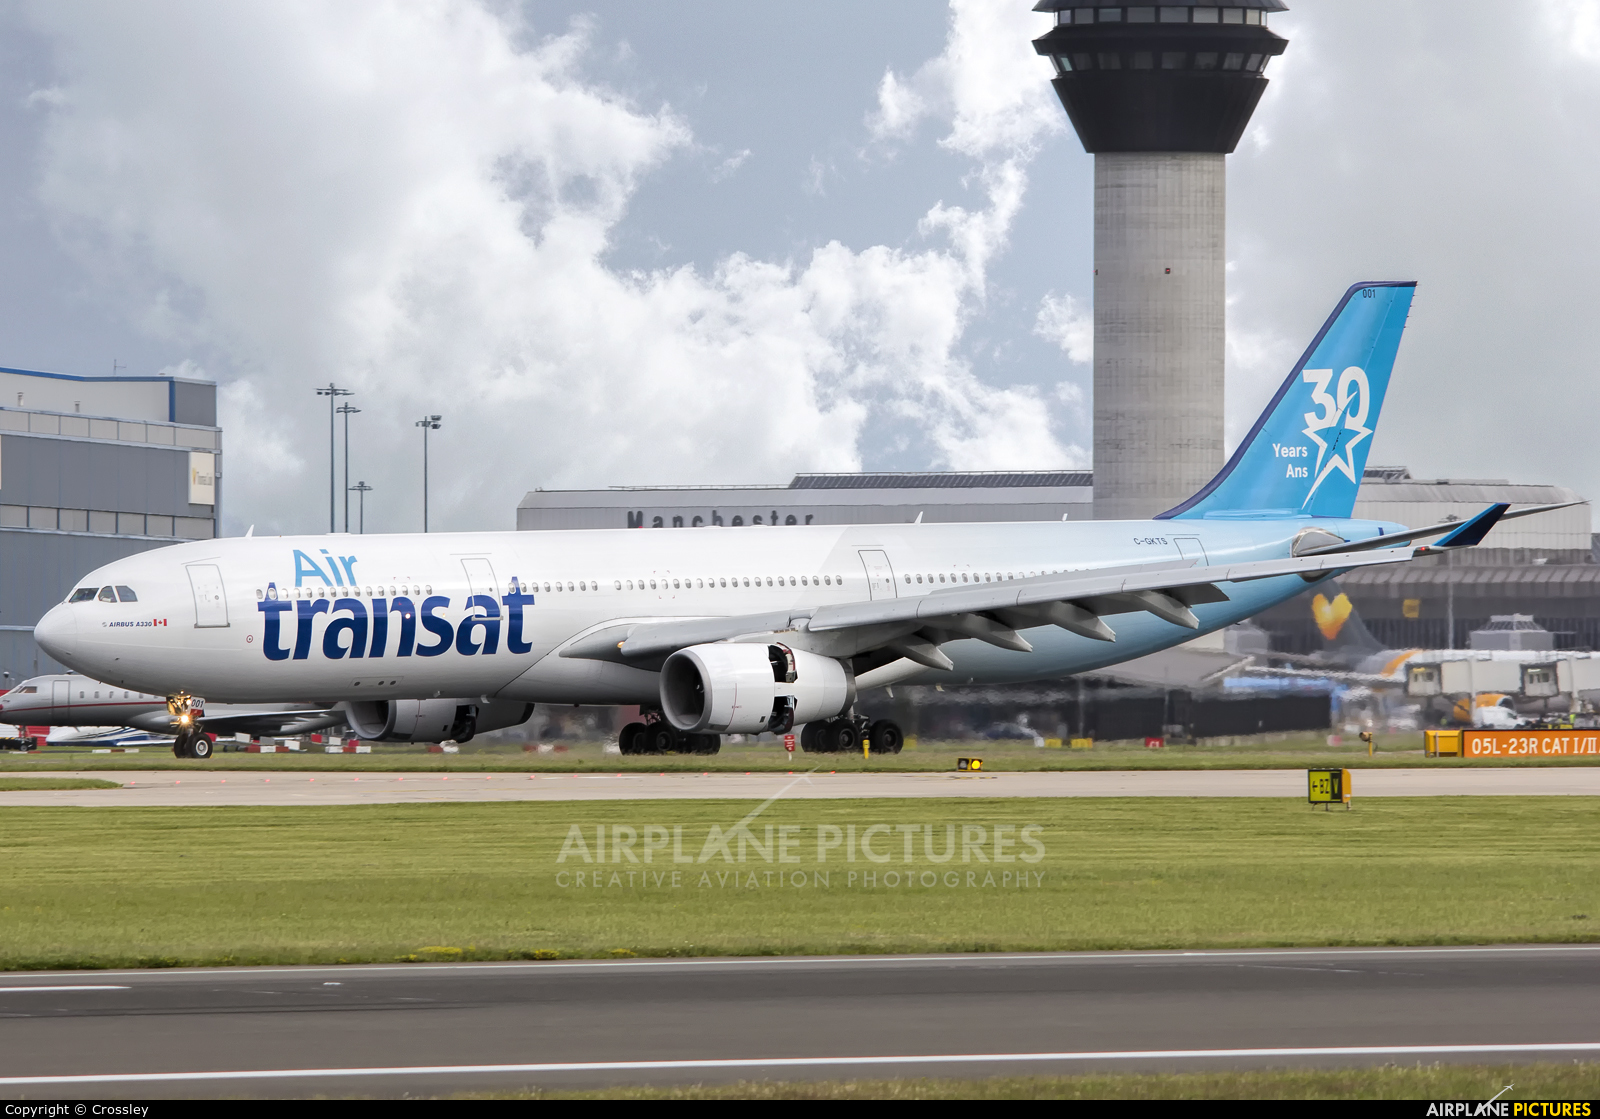 c gkts air transat airbus a330 300 at manchester photo id 915337 airplane pictures net